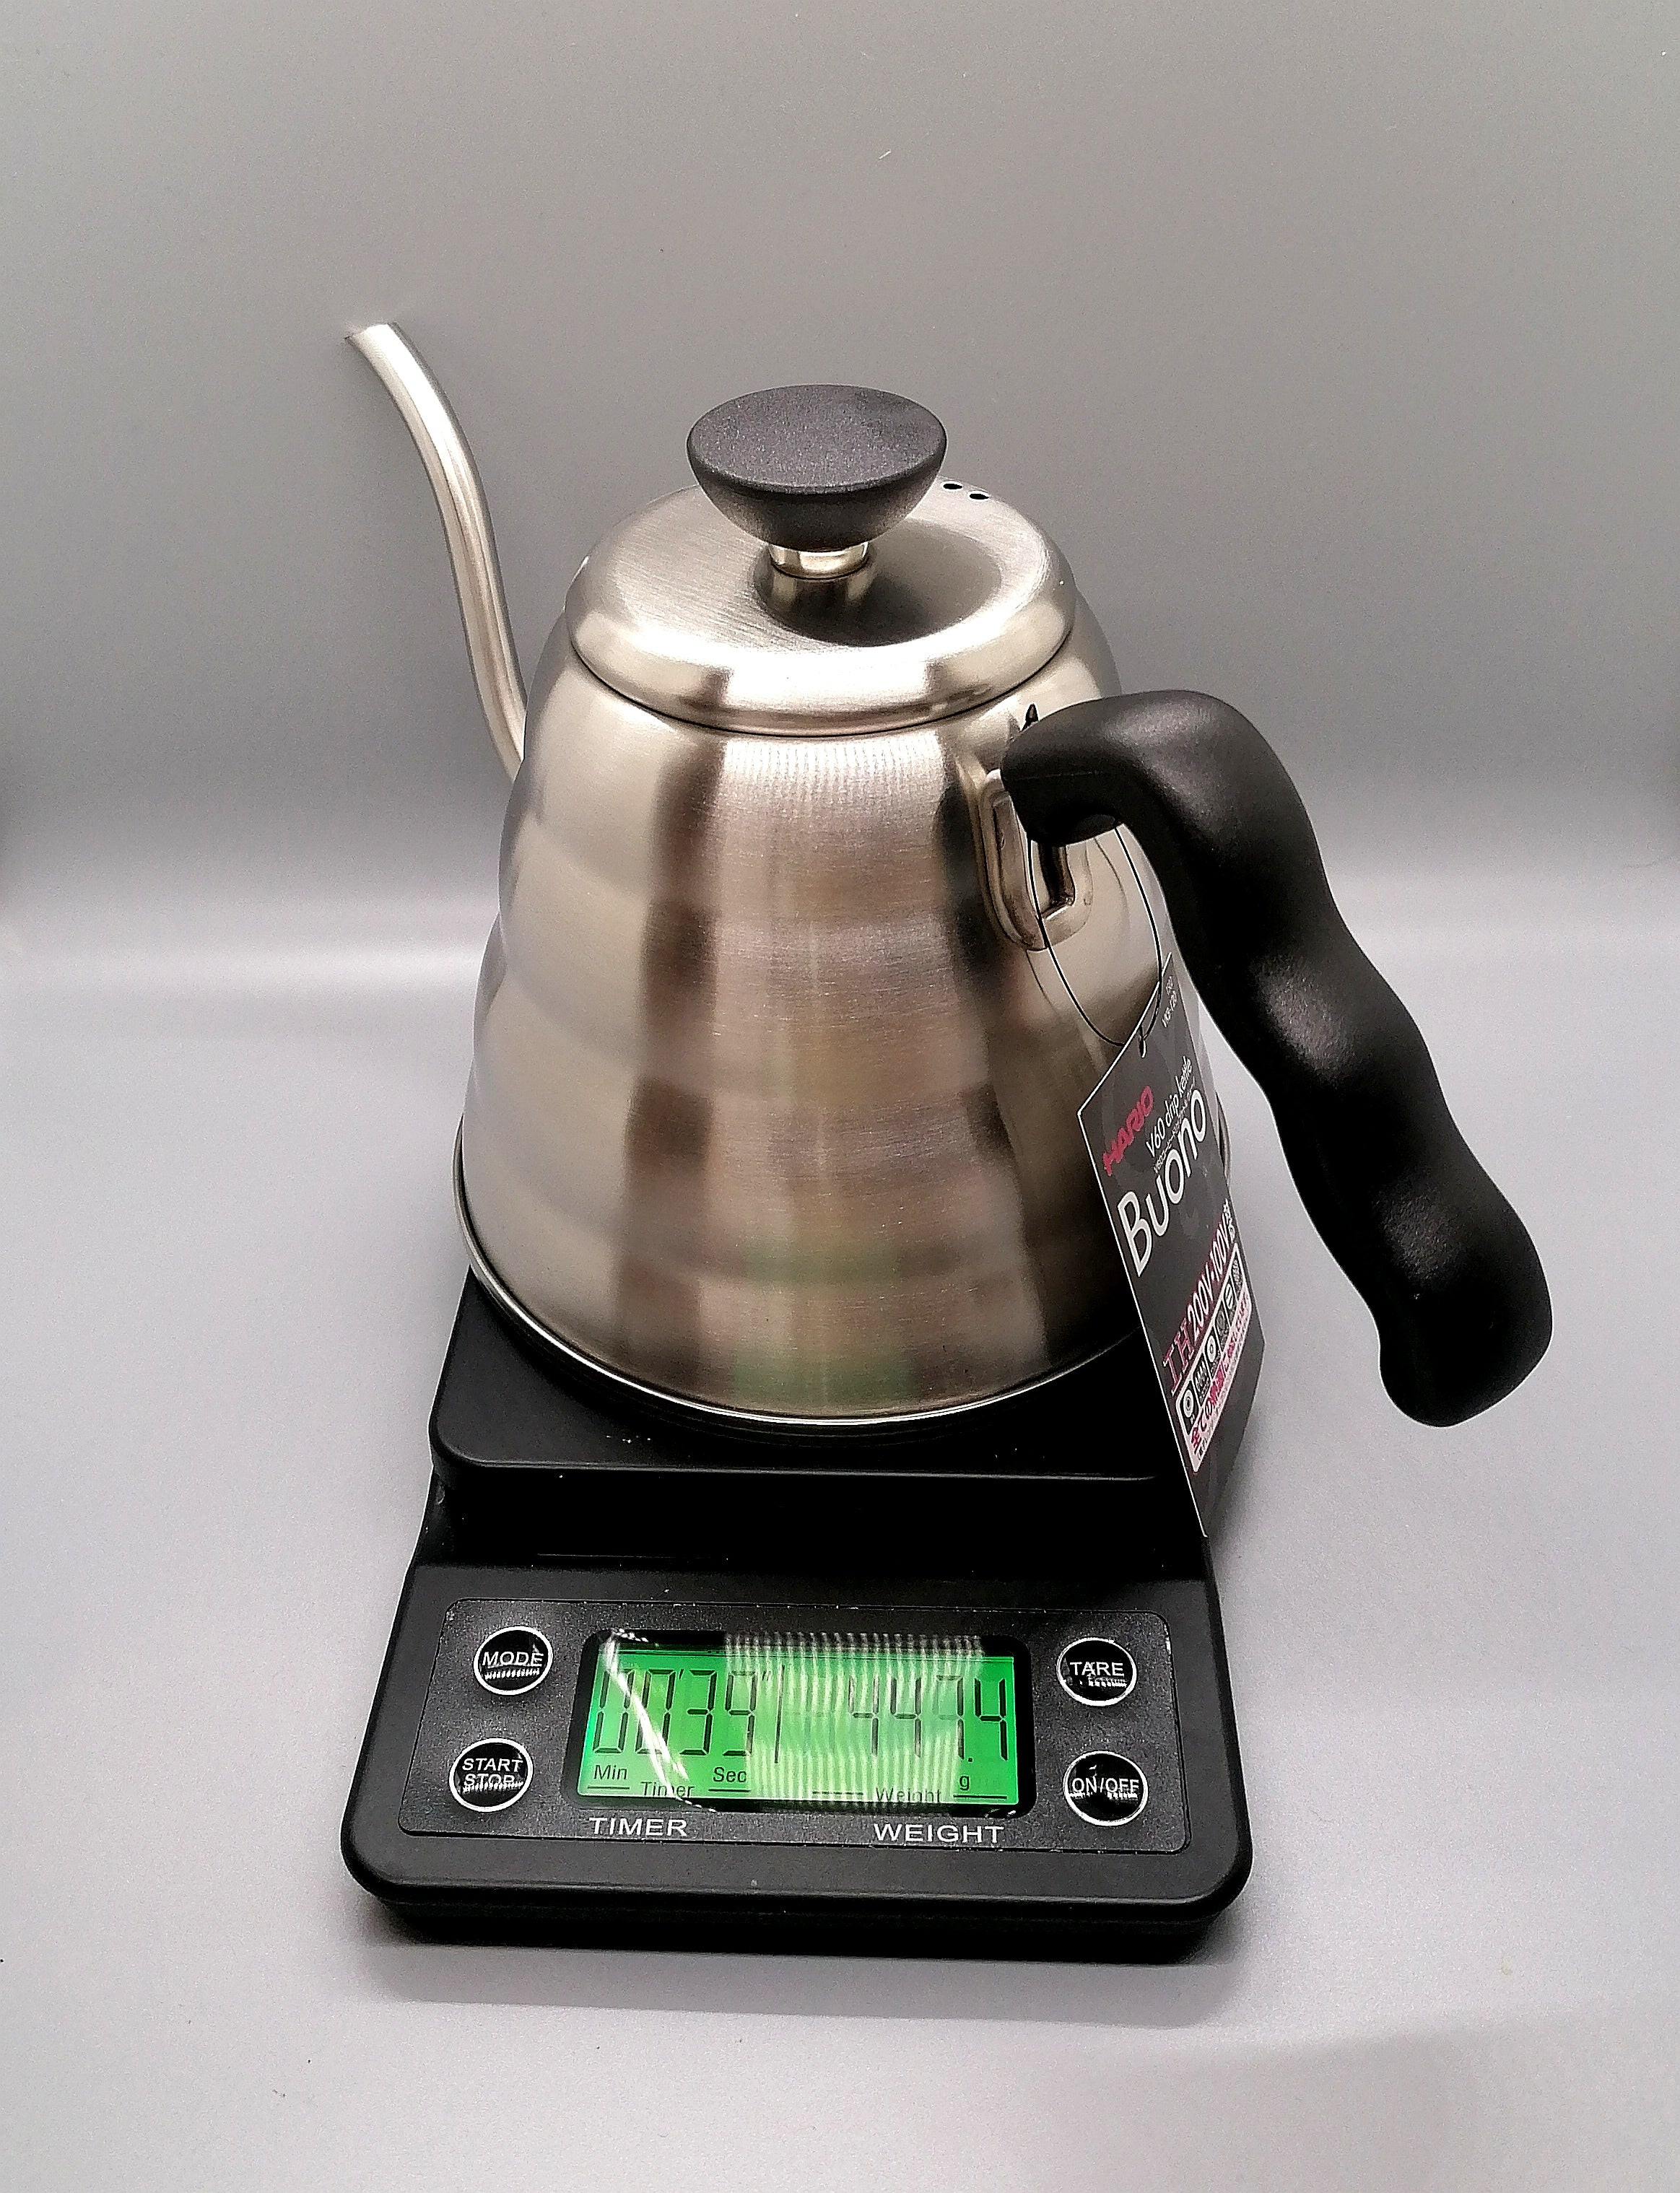 Buono V60 Drip Kettle by Hario 1.2L Stainless Steel